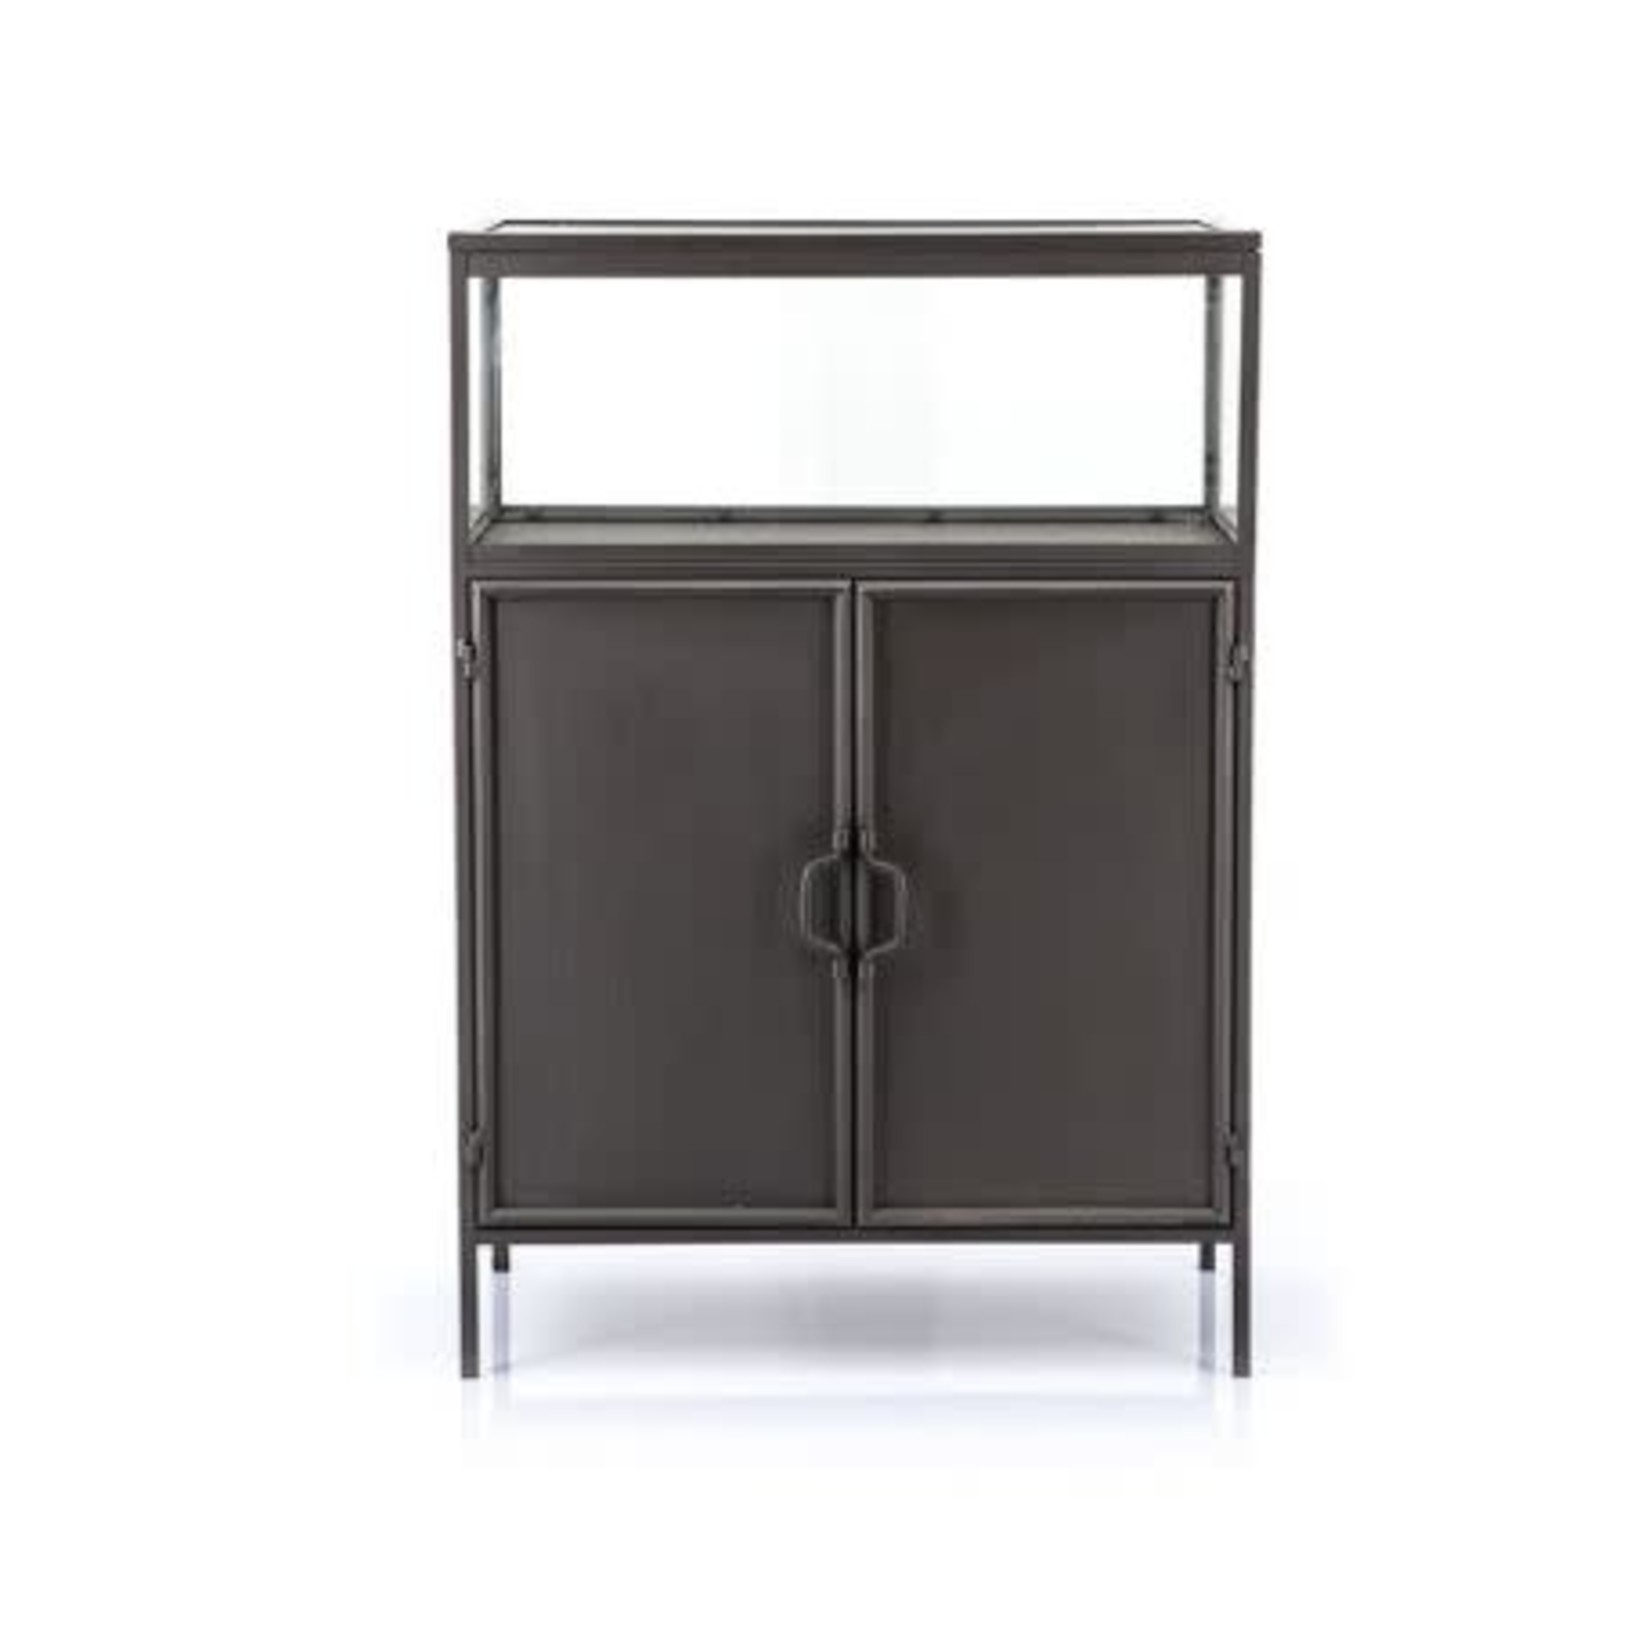 By Boo Ventana Collection - sidetable